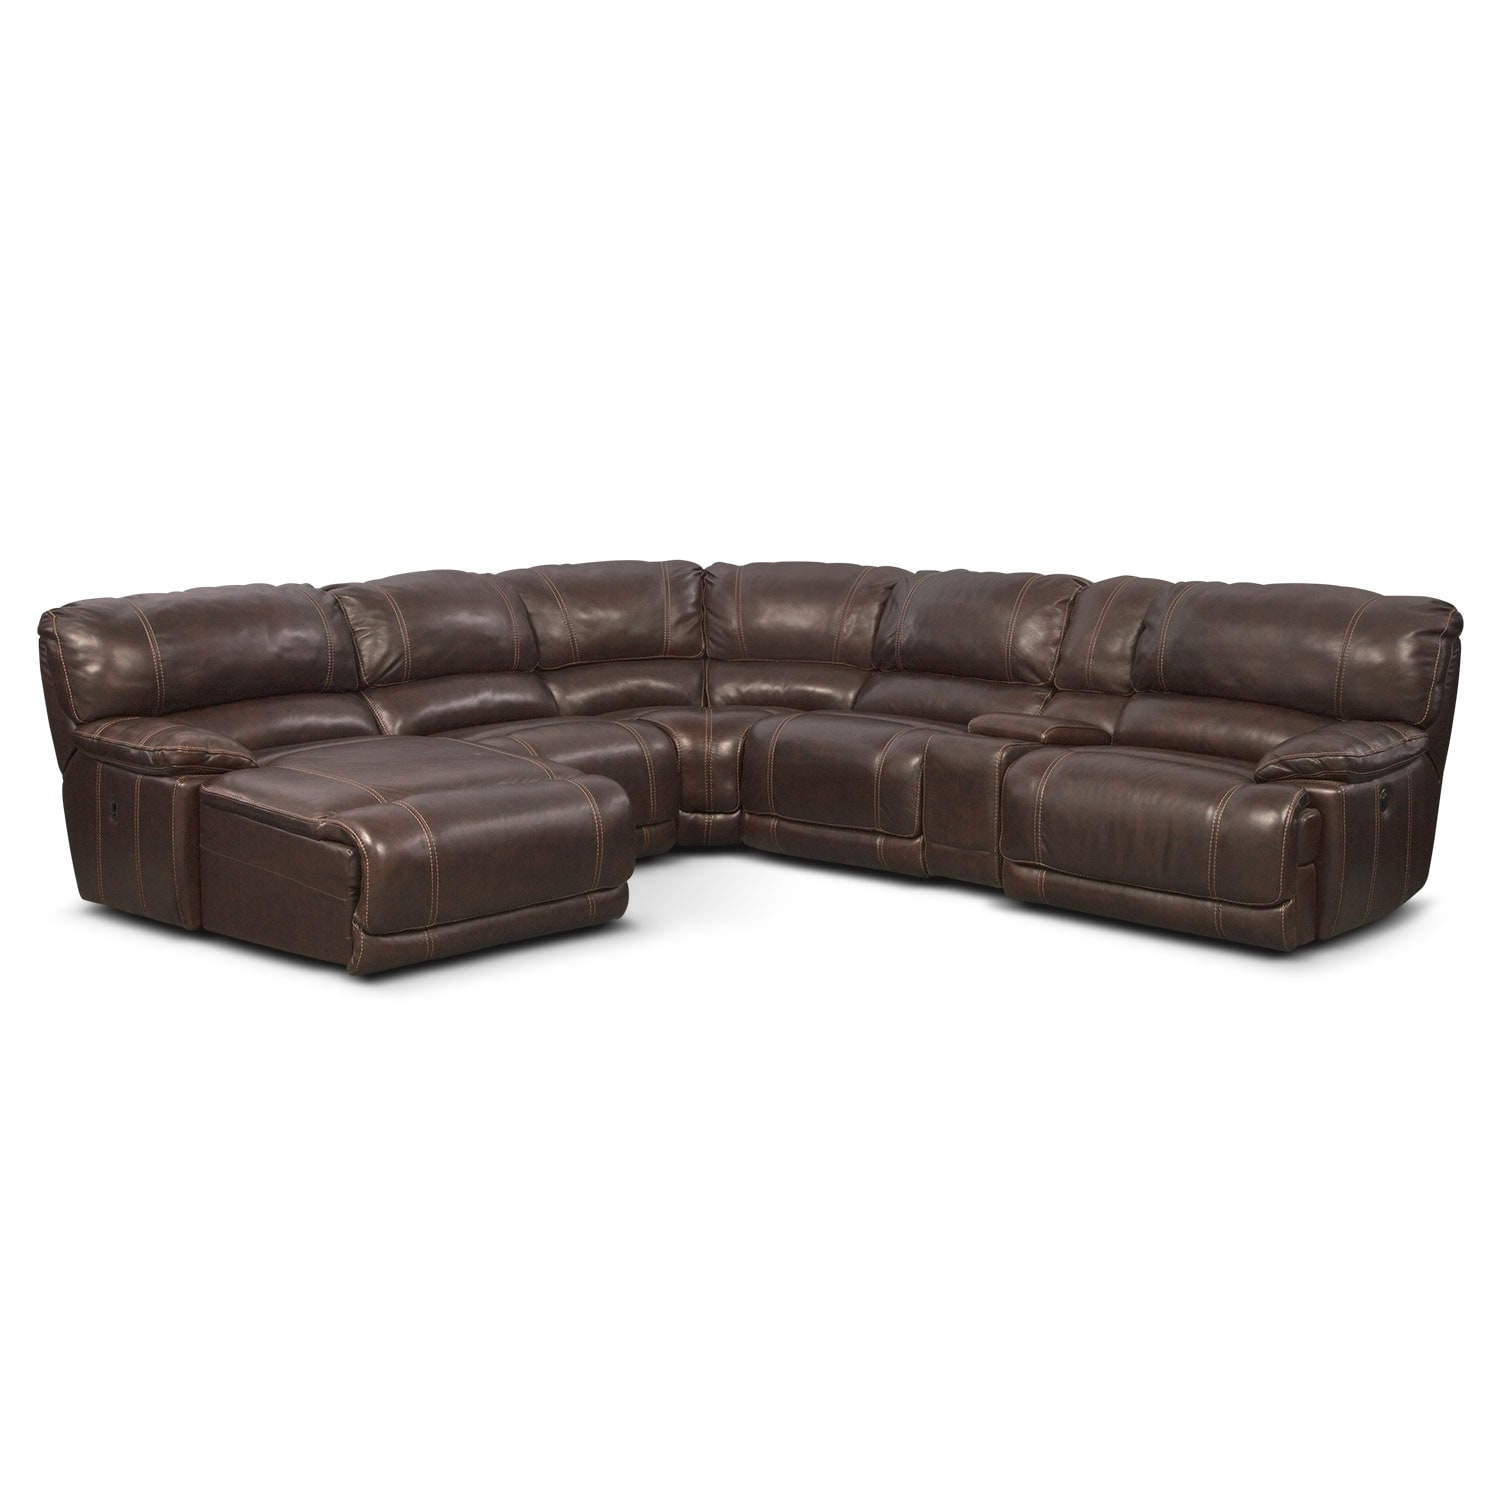 St. Malo 6-Piece Power Reclining Sectional with Left-Facing Chaise - Brown